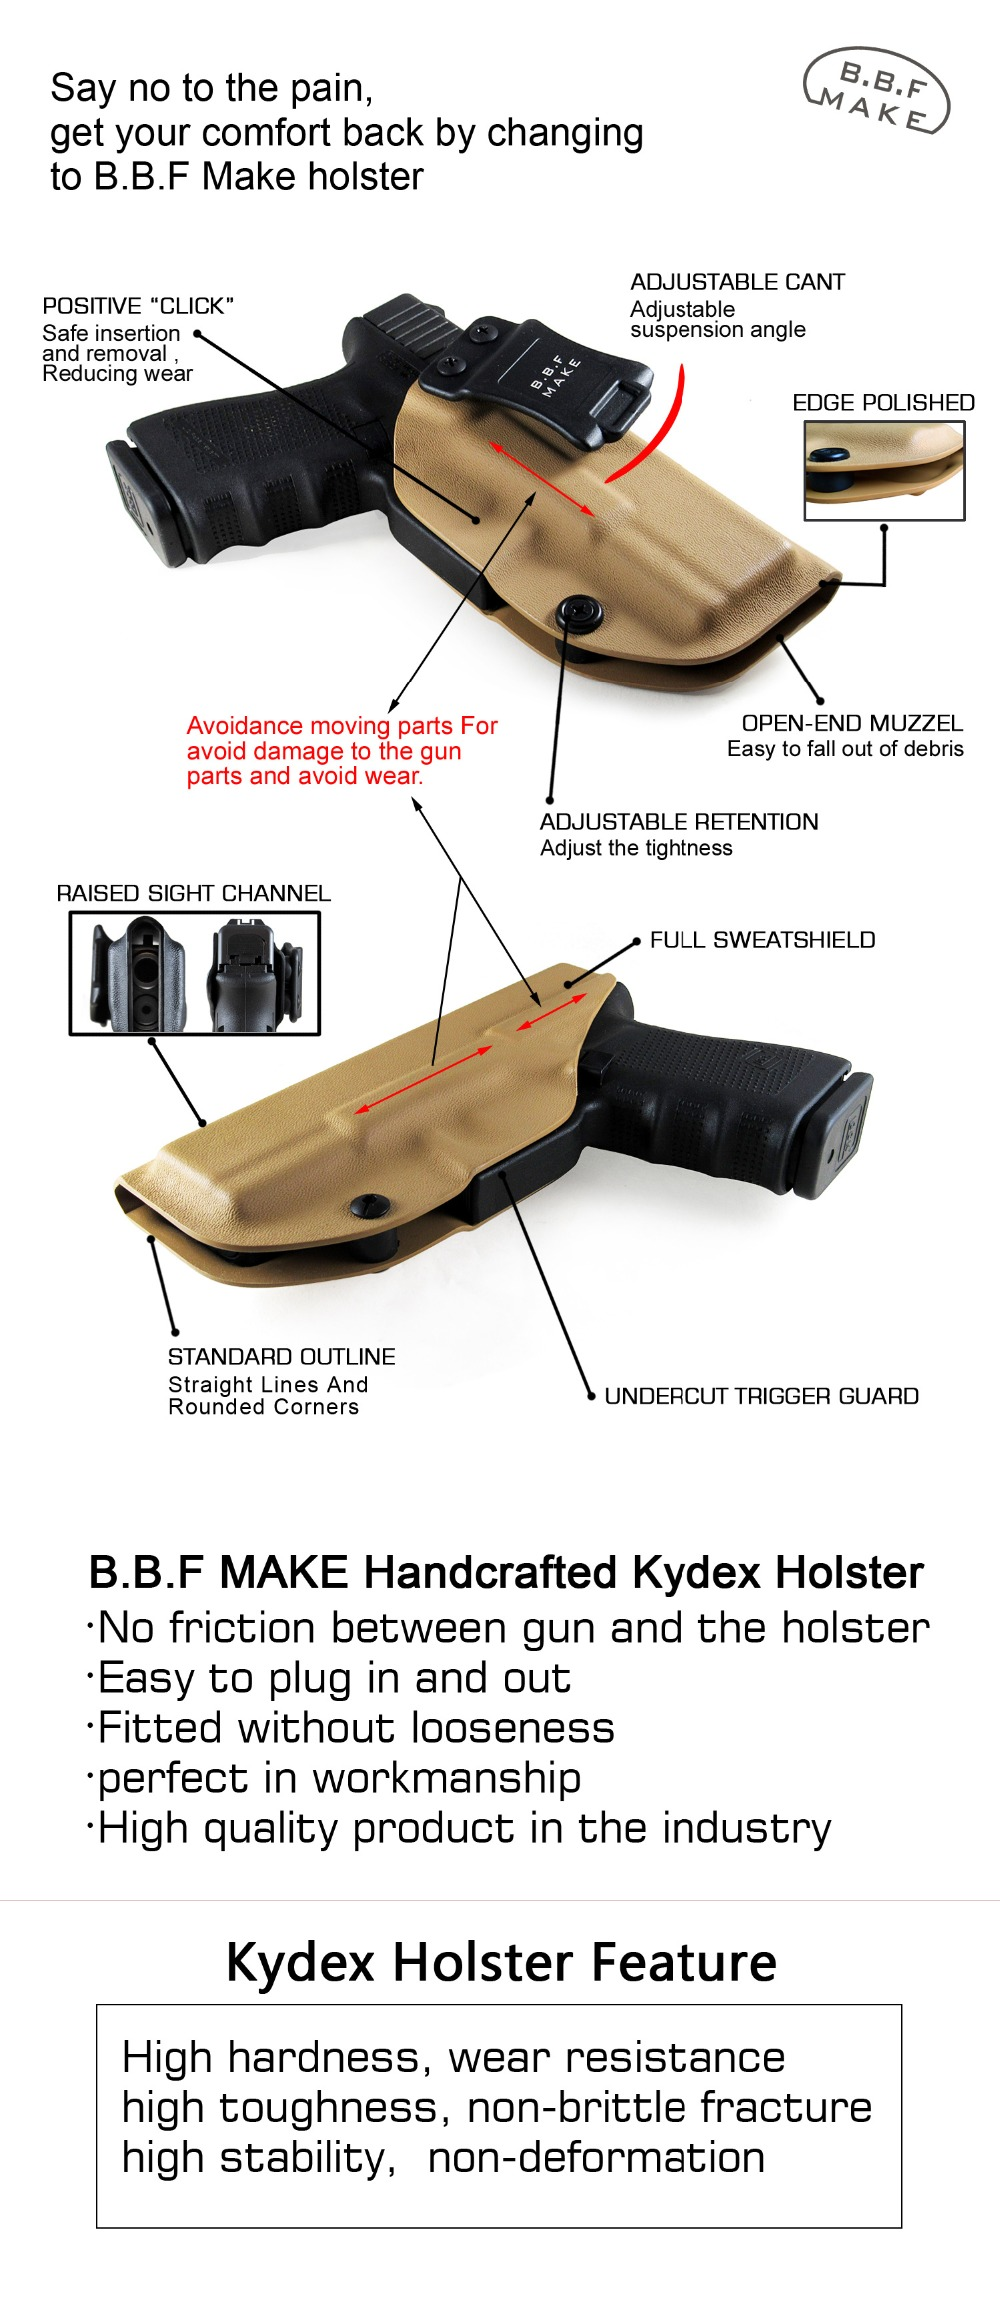 US $29 99 |B B F Make IWB KYDEX Holster Fits: Sig Sauer P365 Gun Holster  Inside Concealed Carry Holsters Pistol Case Guns pouch Accessories-in